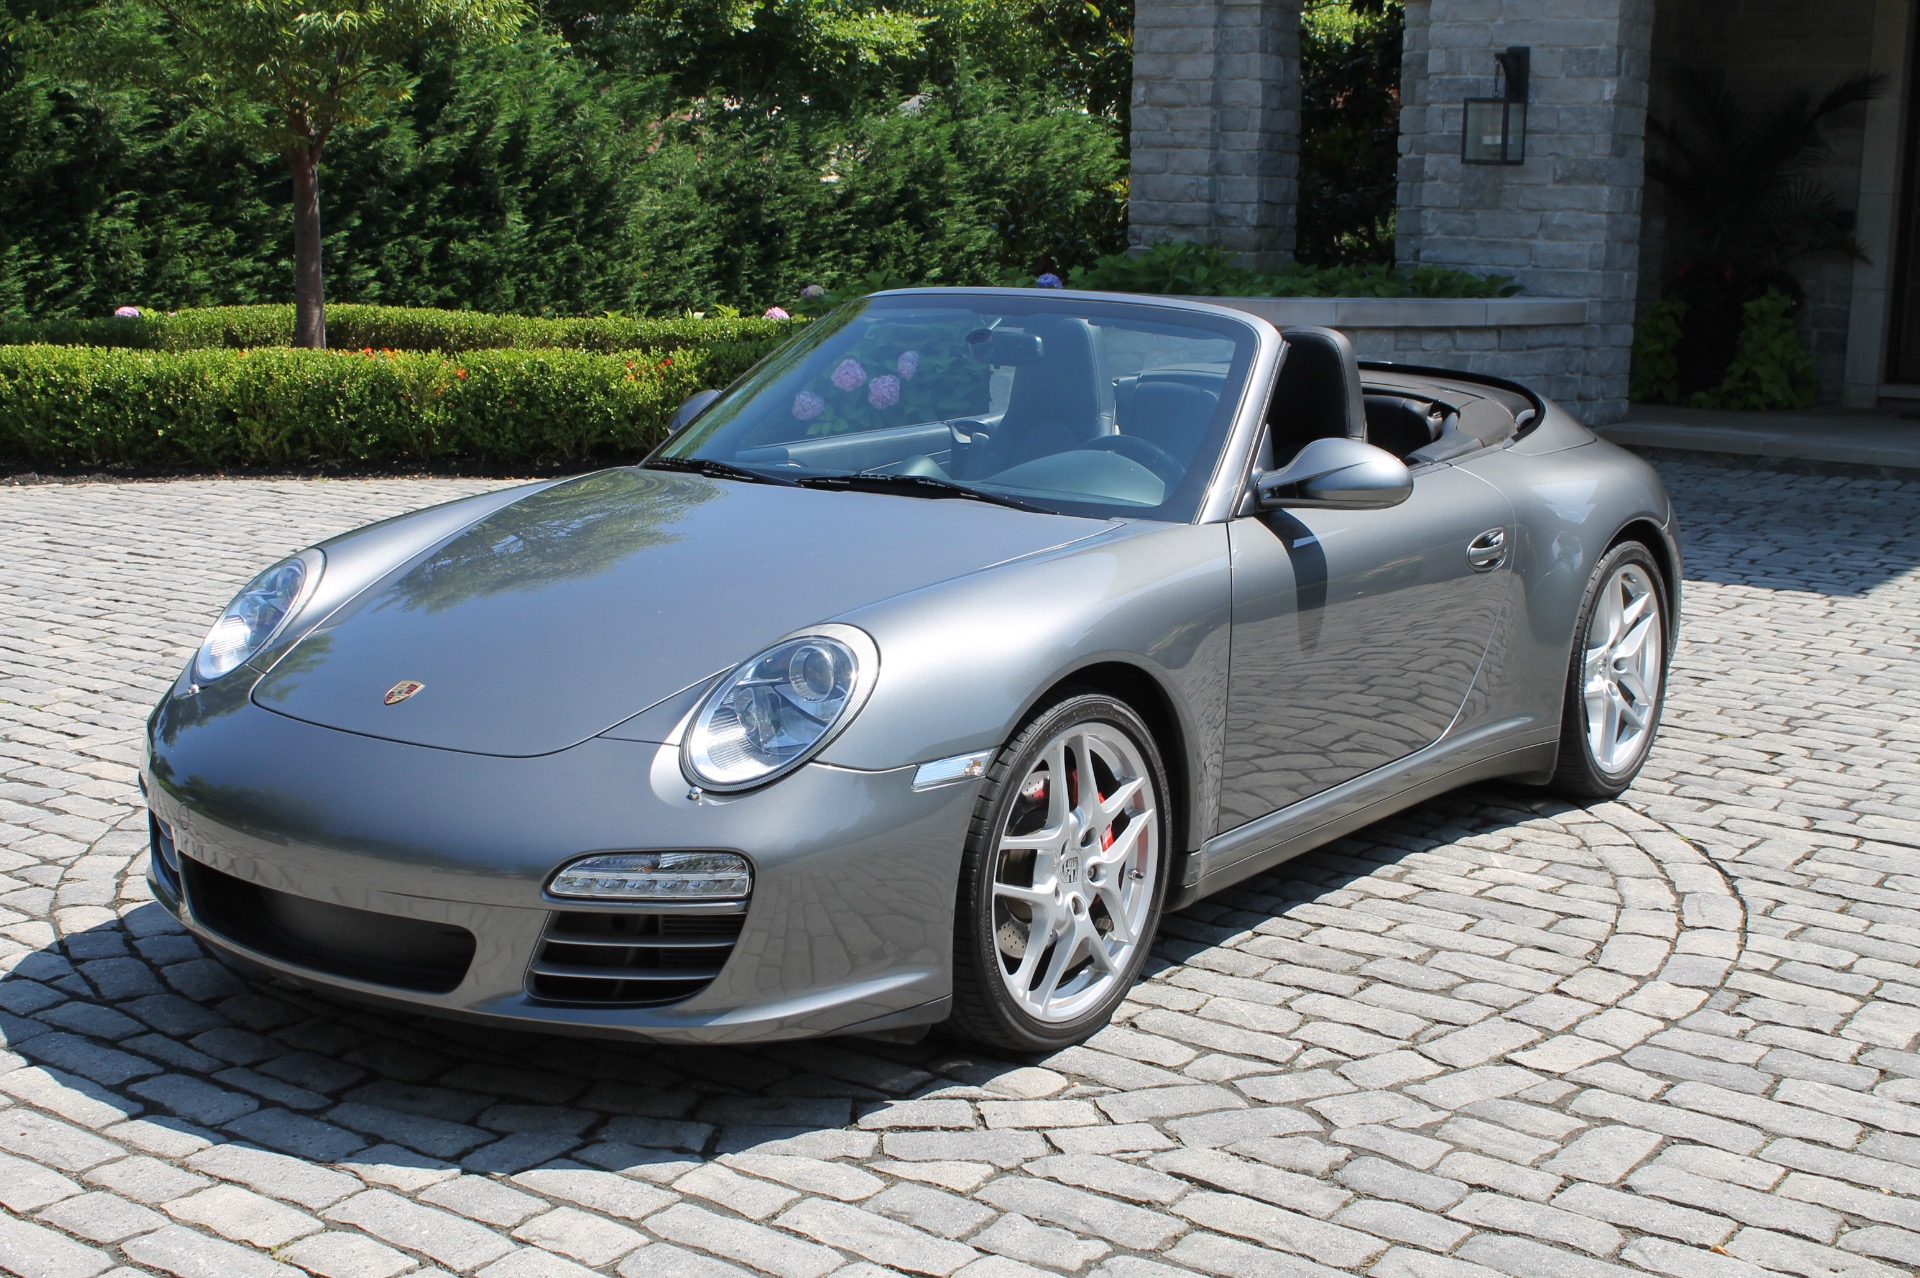 2009 porsche 911 carrera 4s pdk carrera 4s rh legendcarcompany com 2009 porsche 911 repair manual 2009 porsche carrera s owners manual